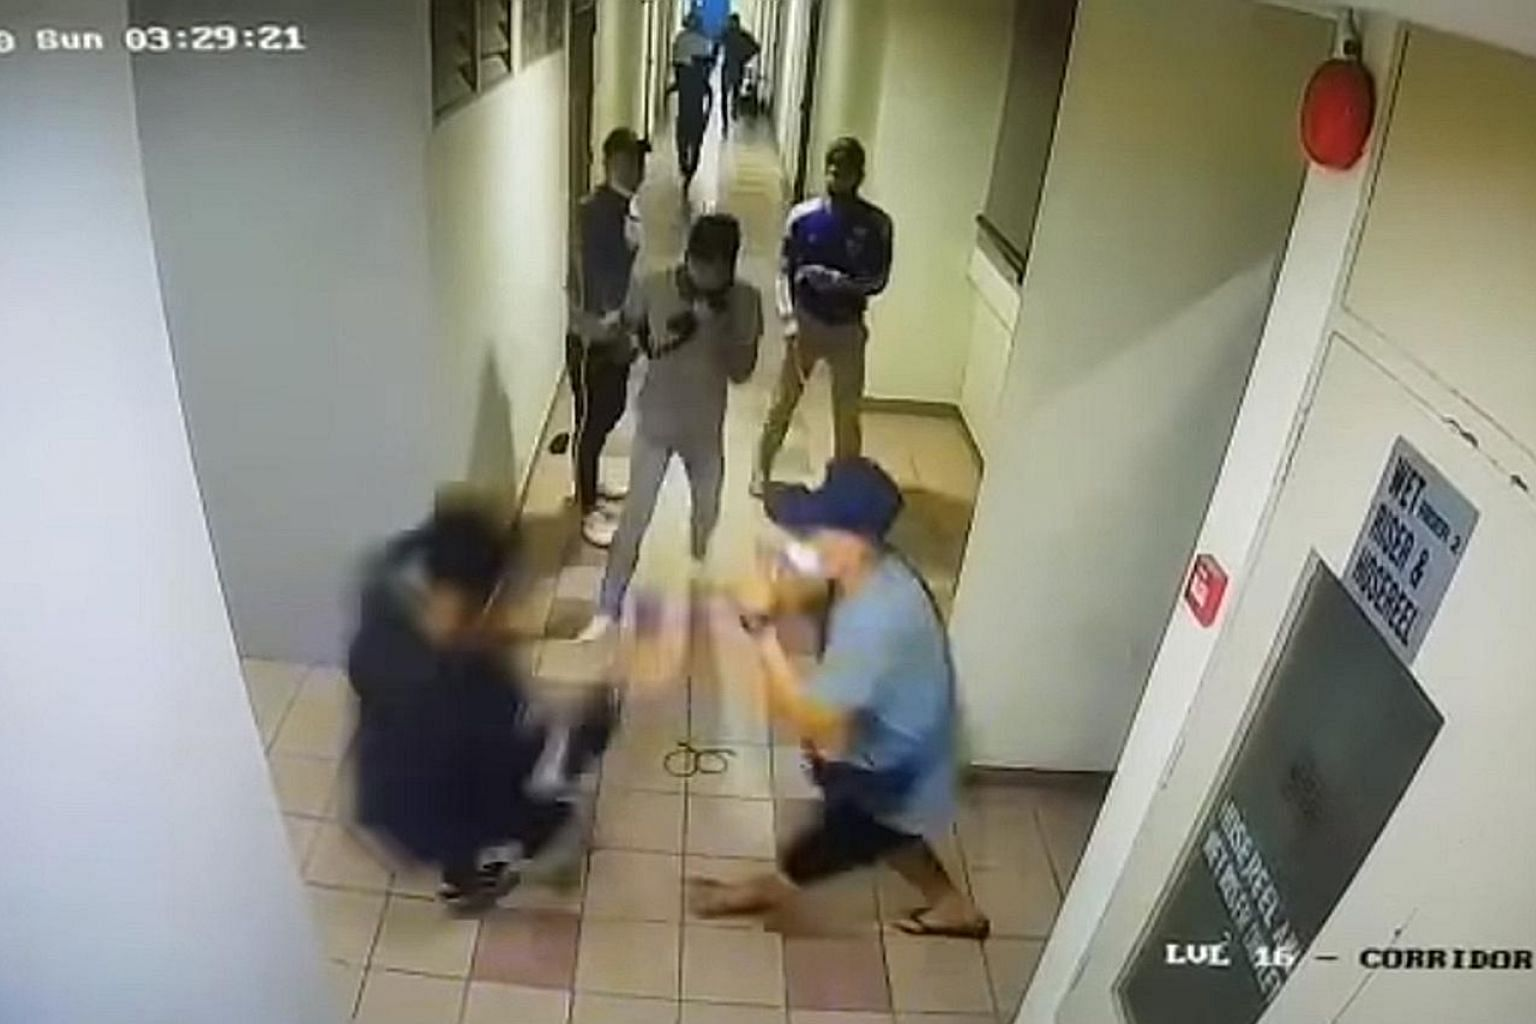 Left and below: The minute-long video clip, widely circulated on social media, shows a group of men being attacked by another group armed with parangs at the People's Park Centre building. It also shows a man being attacked by at least three people w